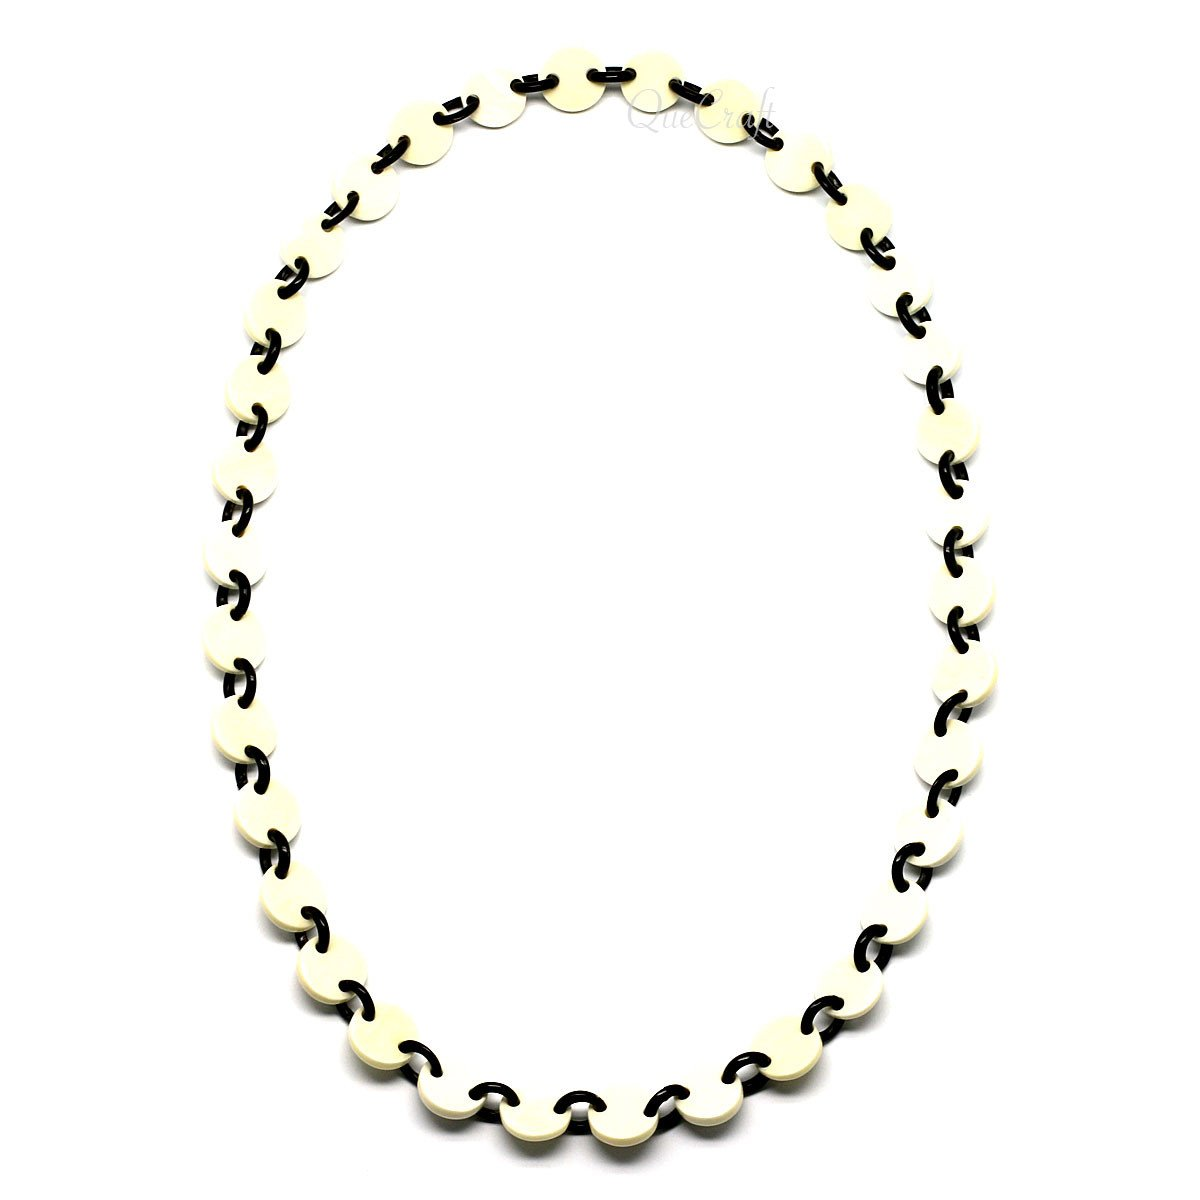 Bone & Horn Chain Necklace #6620 - HORN.JEWELRY